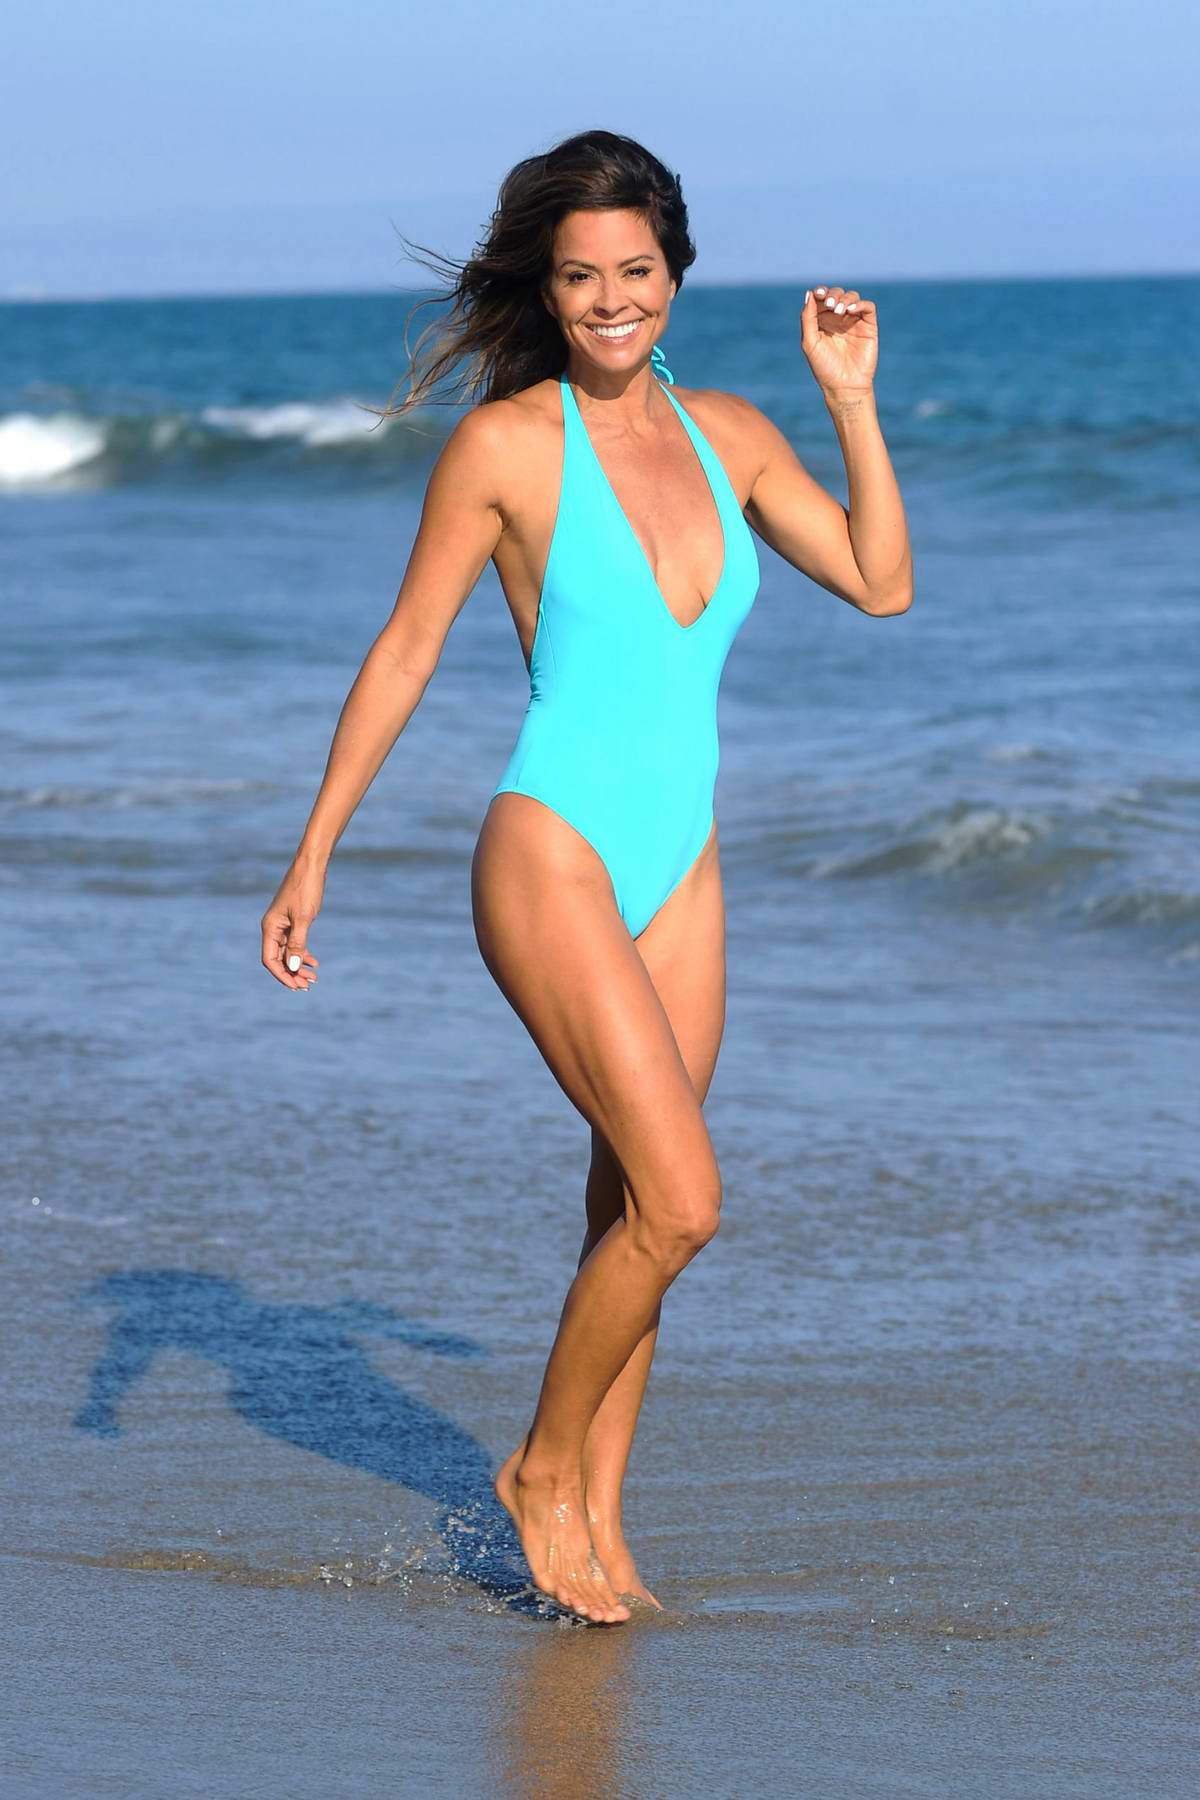 Brooke Burke enjoys the beach in an aqua blue swimsuit in Malibu, California